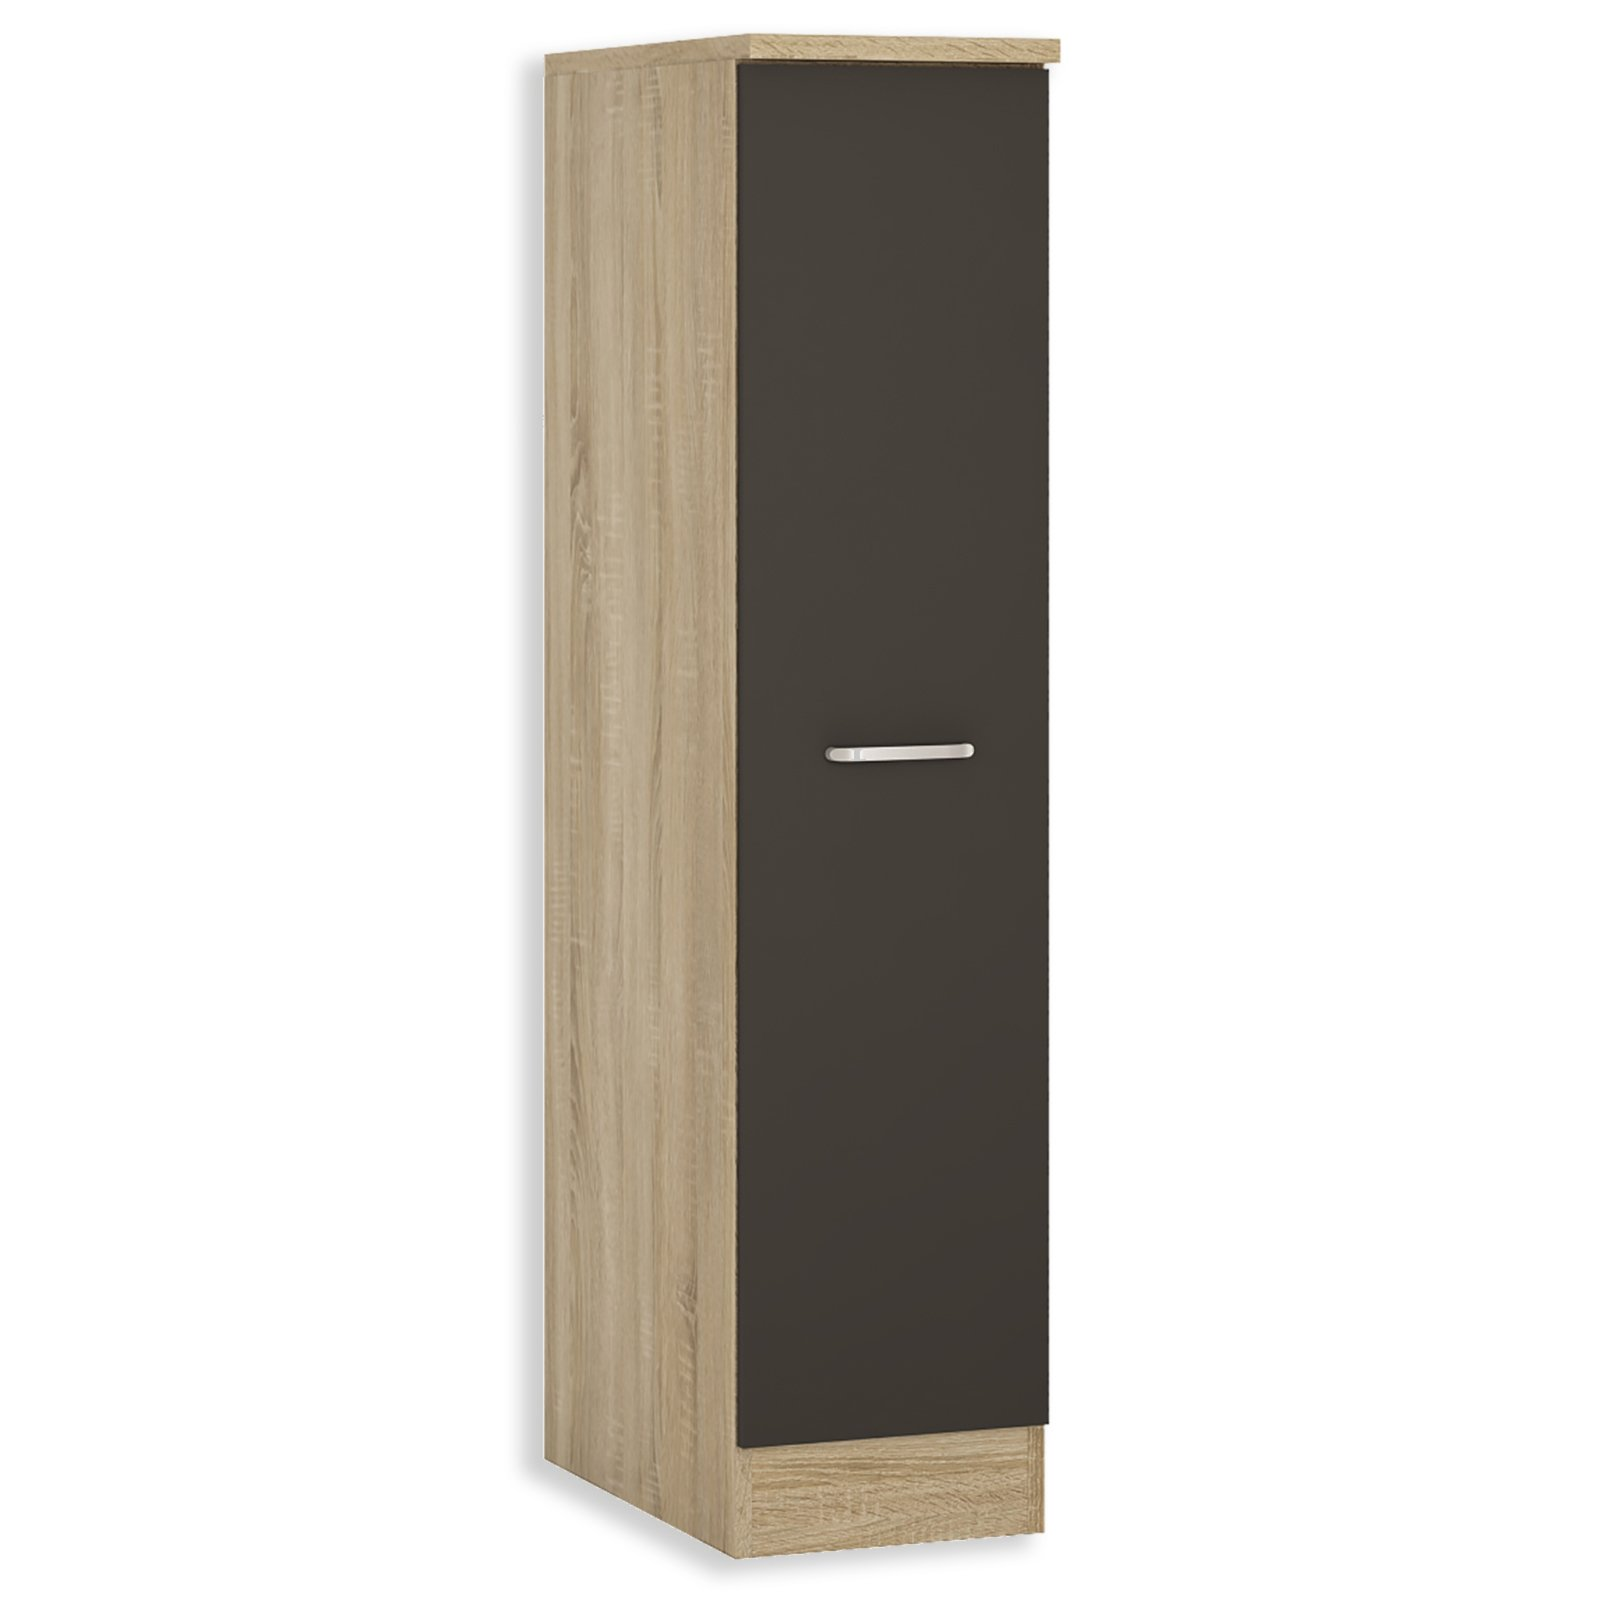 apothekerschrank fox anthrazit sonoma eiche 30 cm breit unterschr nke einzelschr nke. Black Bedroom Furniture Sets. Home Design Ideas